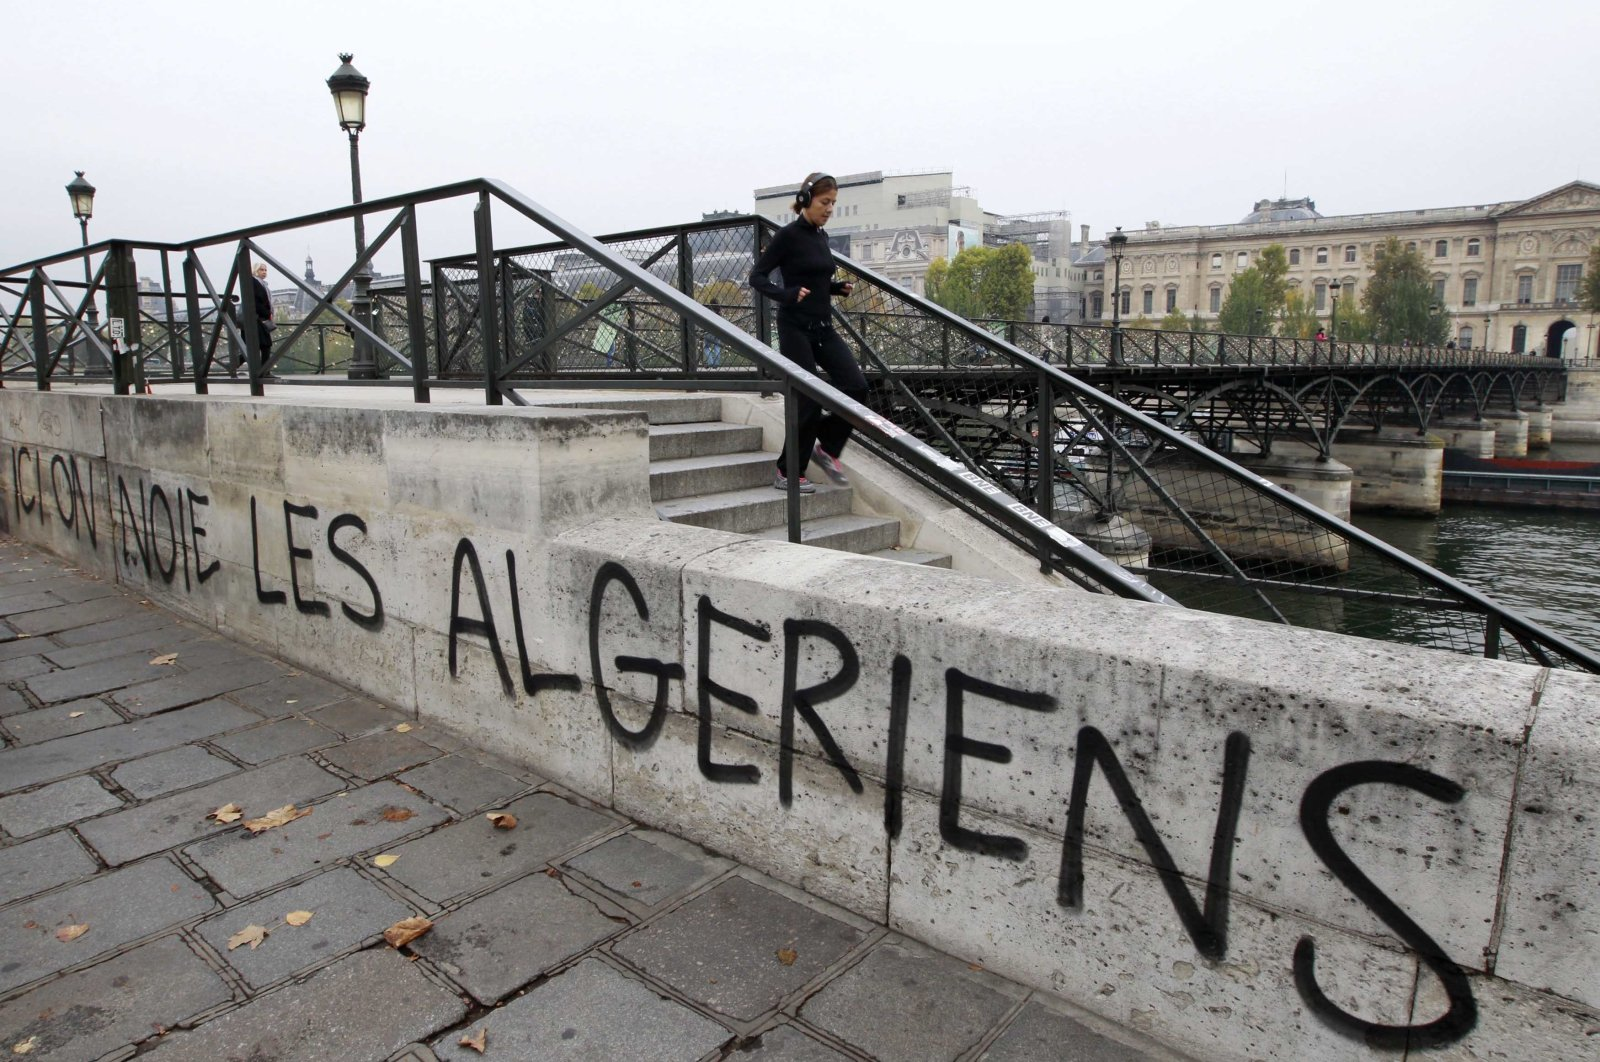 """A slogan """"We drown Algerians here"""" is painted on the wall of the Seine river banks near the Pont des Arts in Paris October 17, 2011 to mark the 50th anniversary of the Paris massacre of 1961. (Reuters Photo)"""